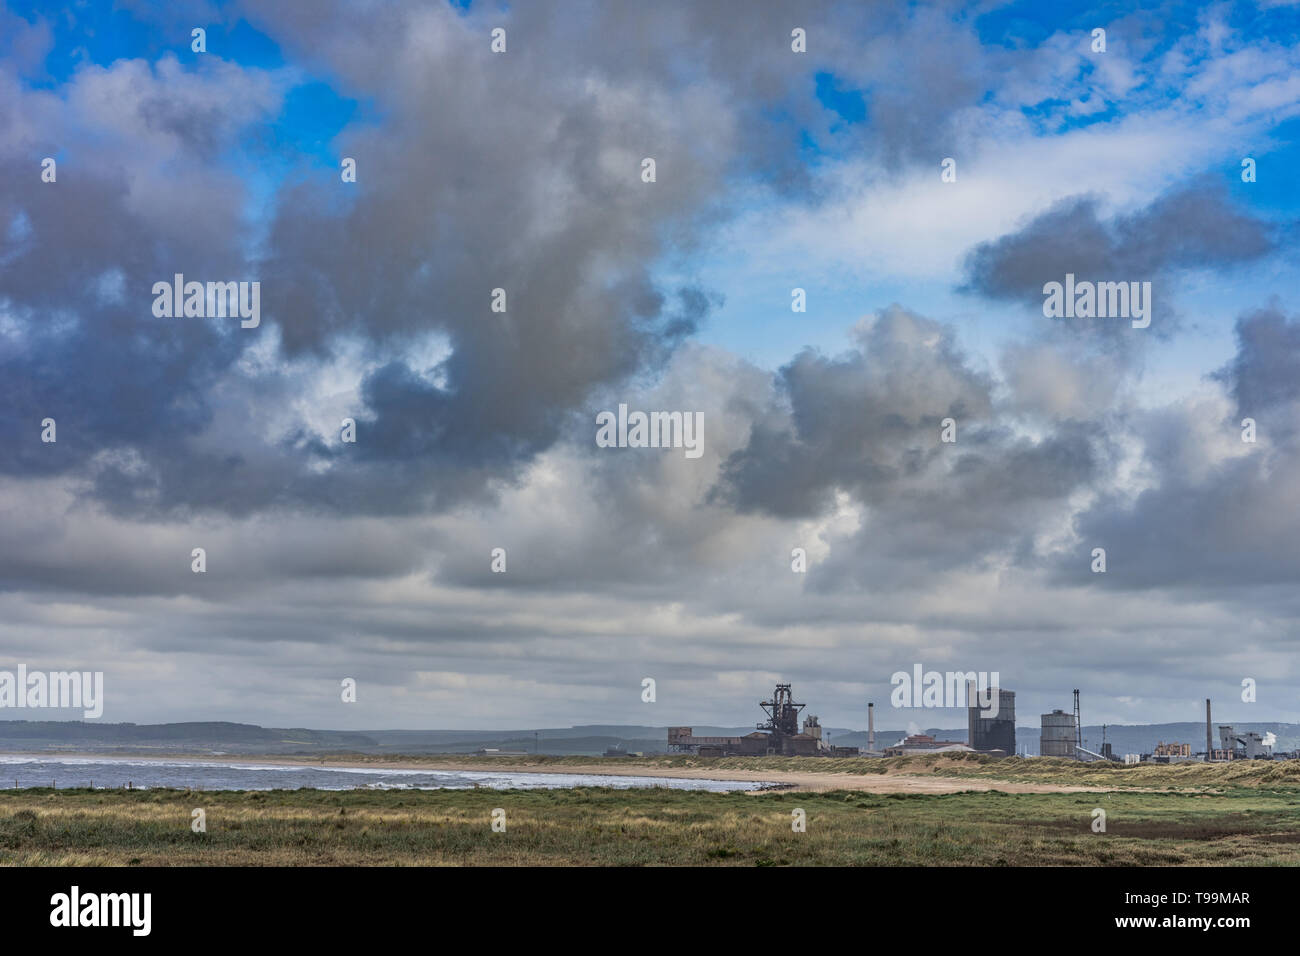 British Steel shut down and abandoned. Located on the north east coast of England. - Stock Image